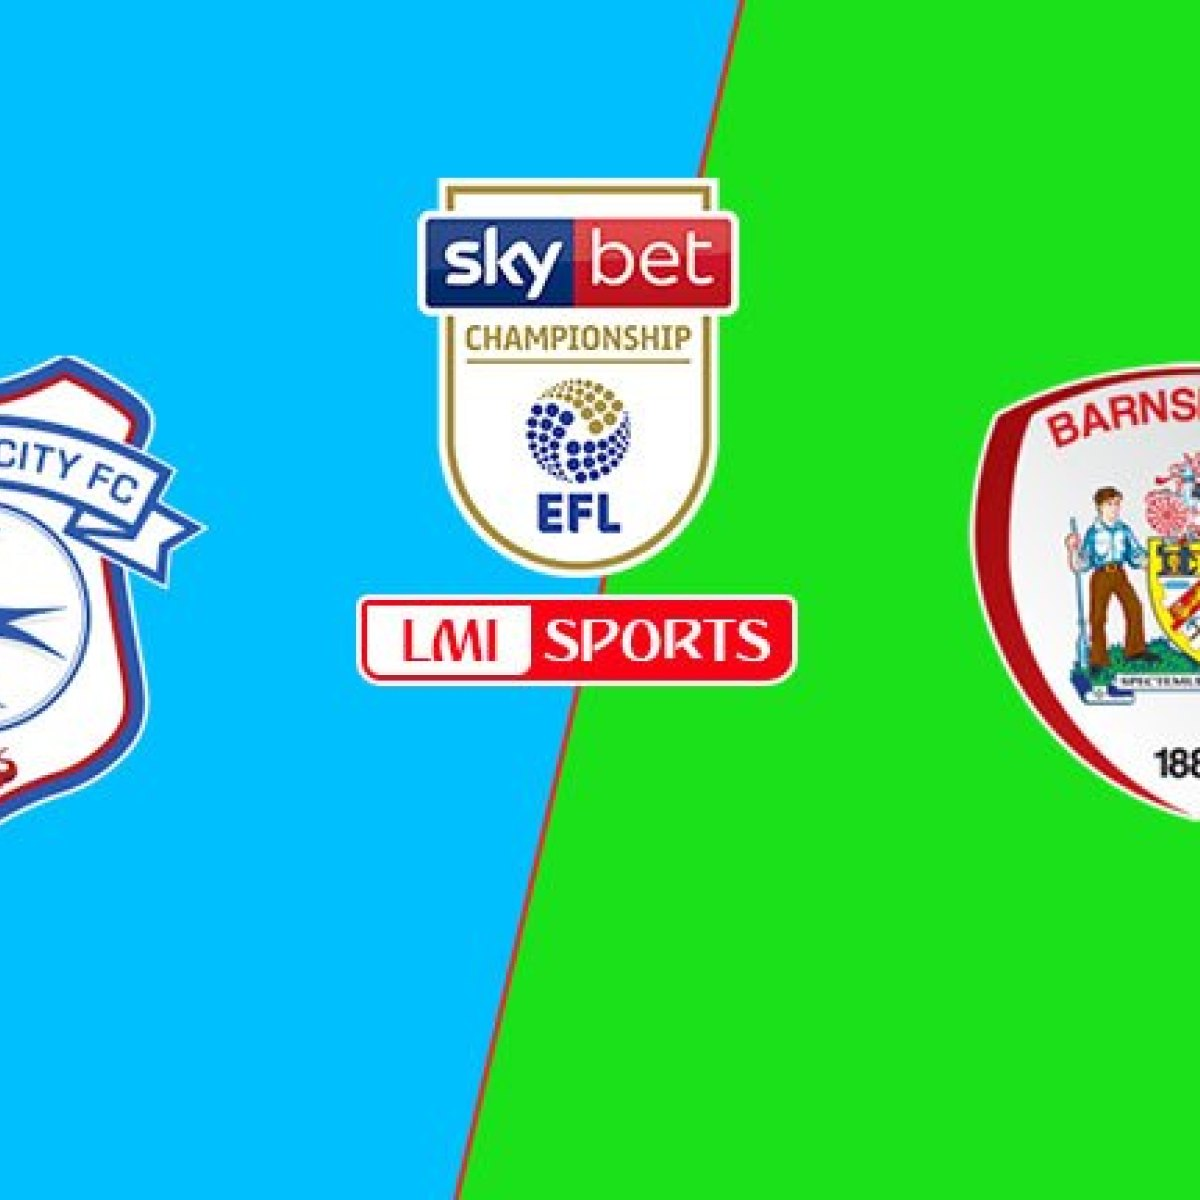 Cardiff City vs Barnsley Soccer Streams Reddit Free.